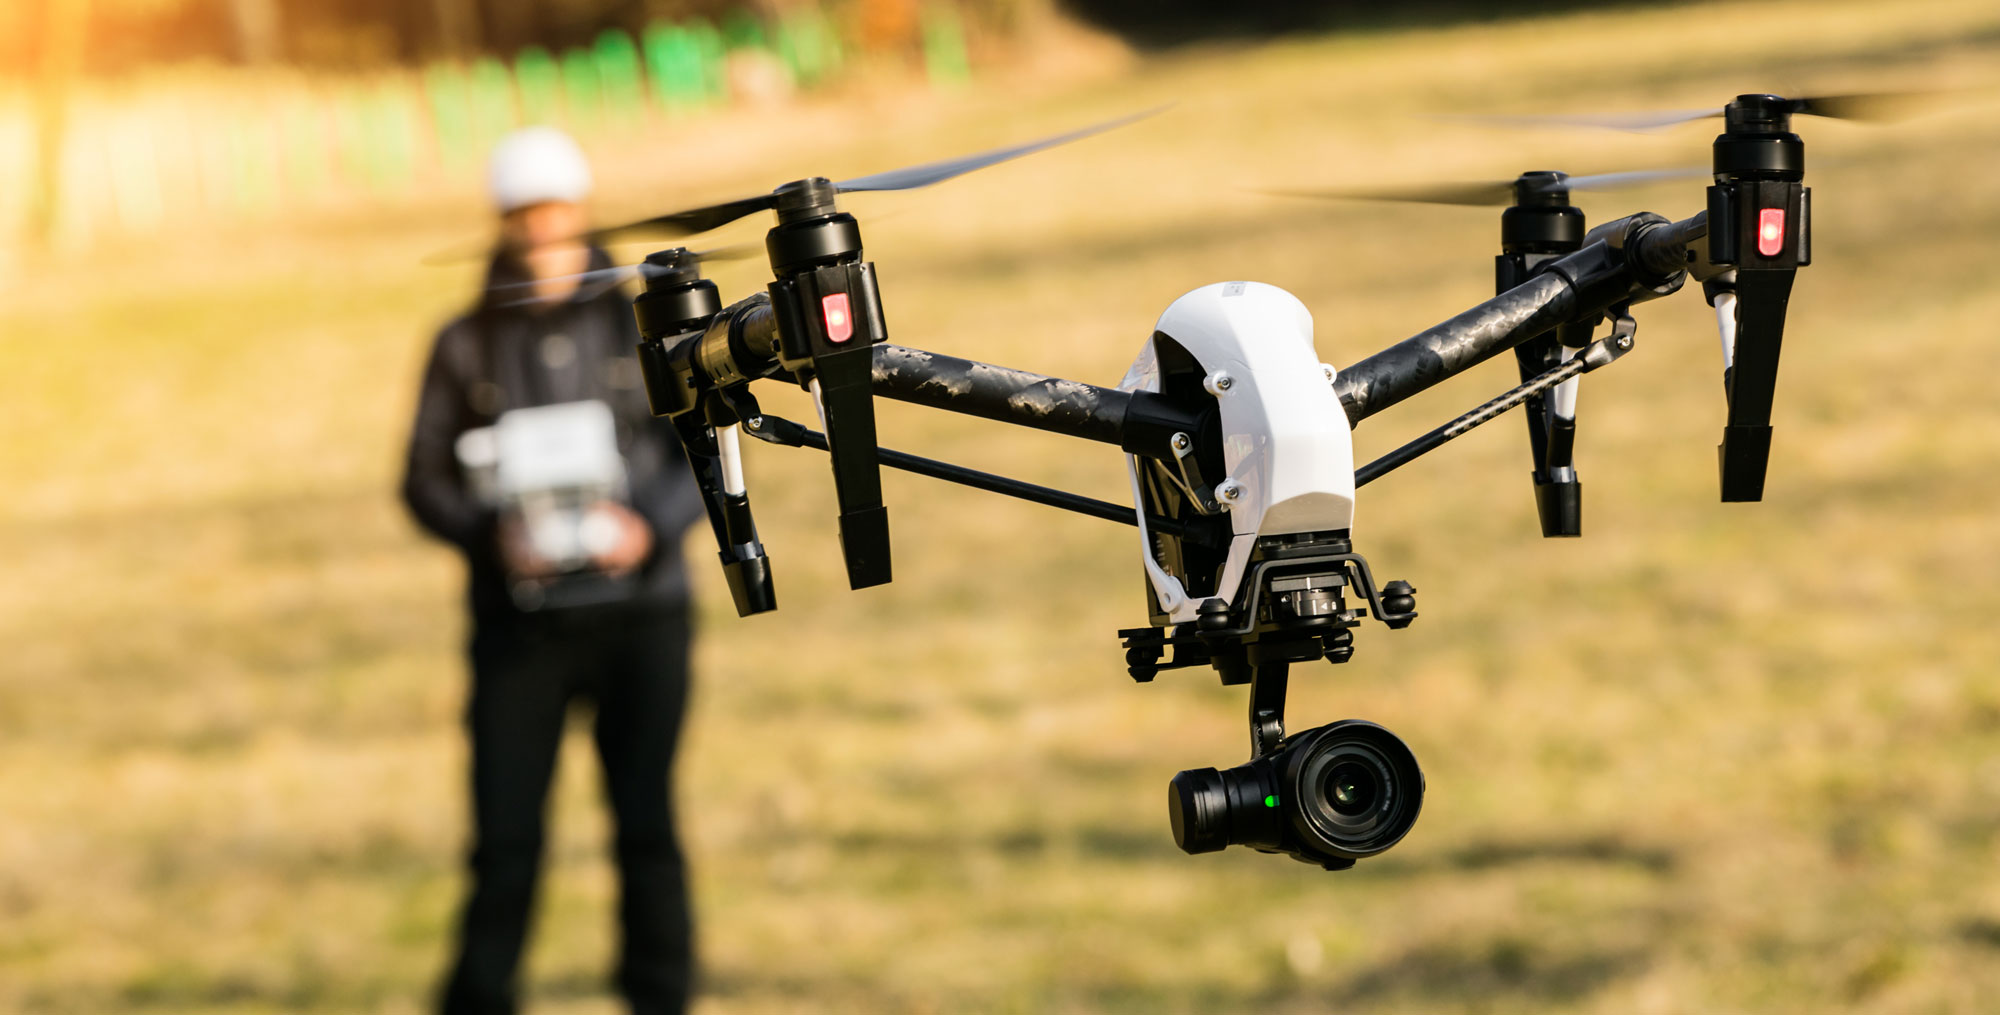 Want to Hire a Drone Pilot? Read This First.